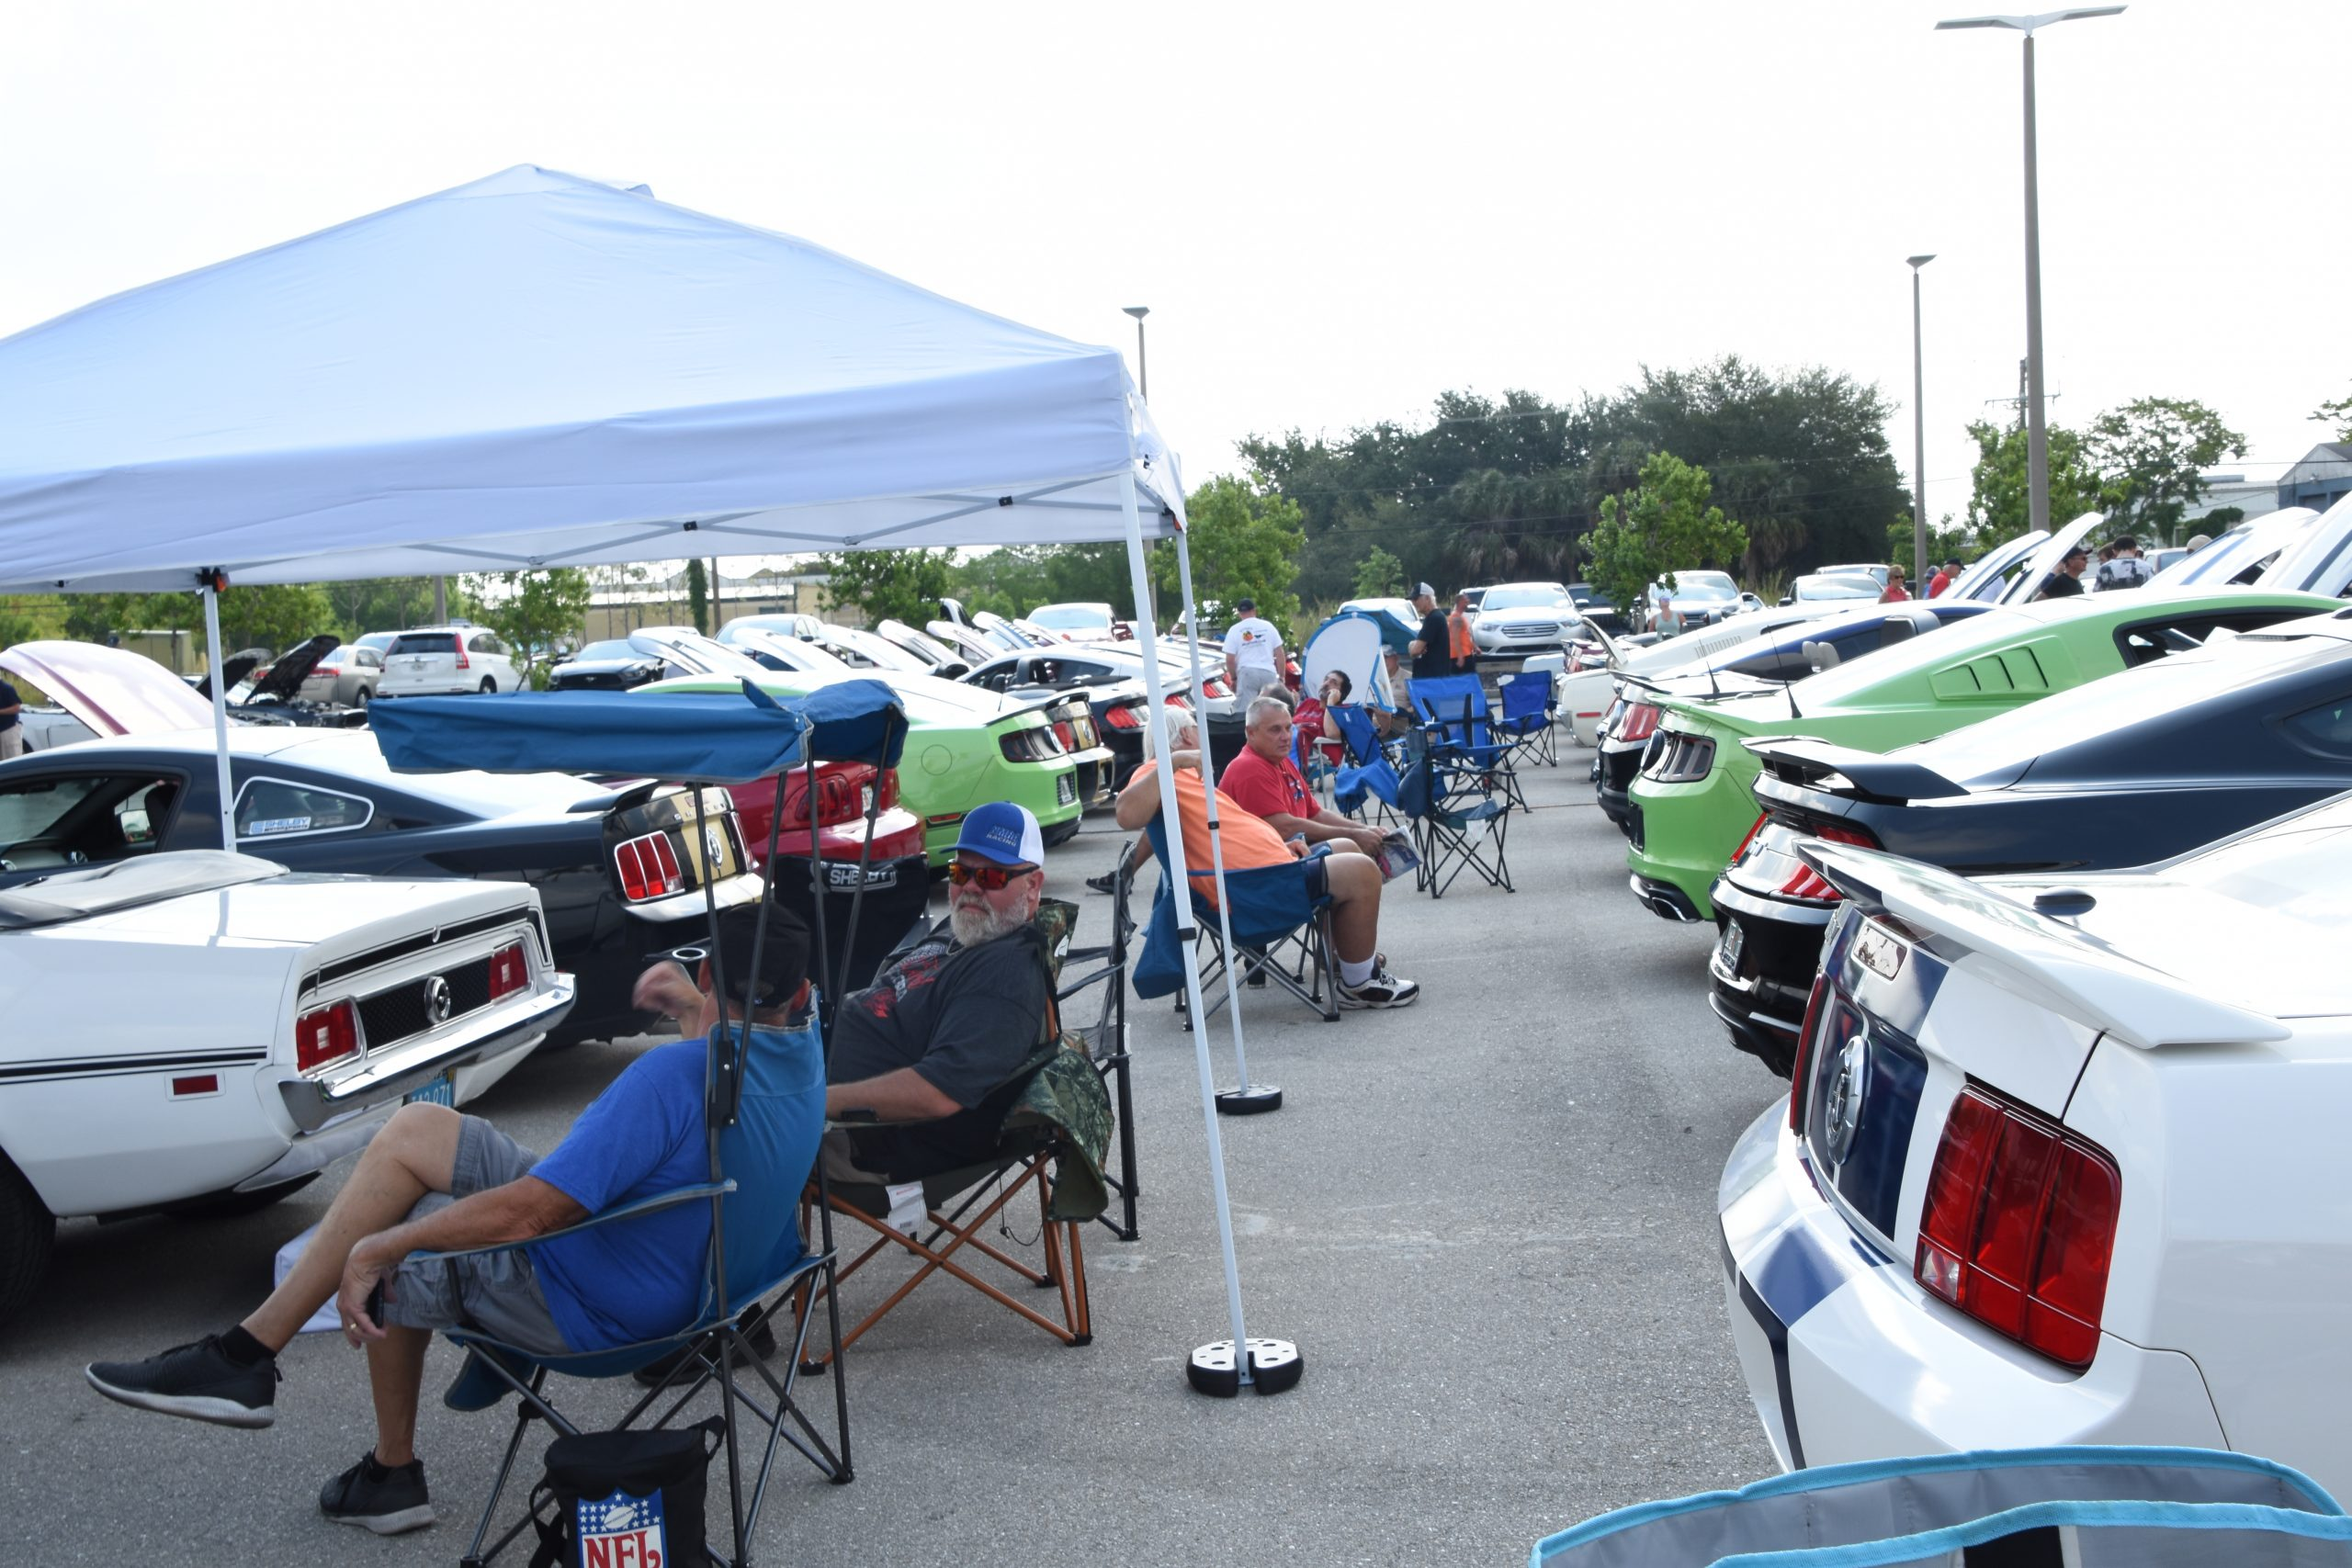 Mustang owners relaxing behind their cars